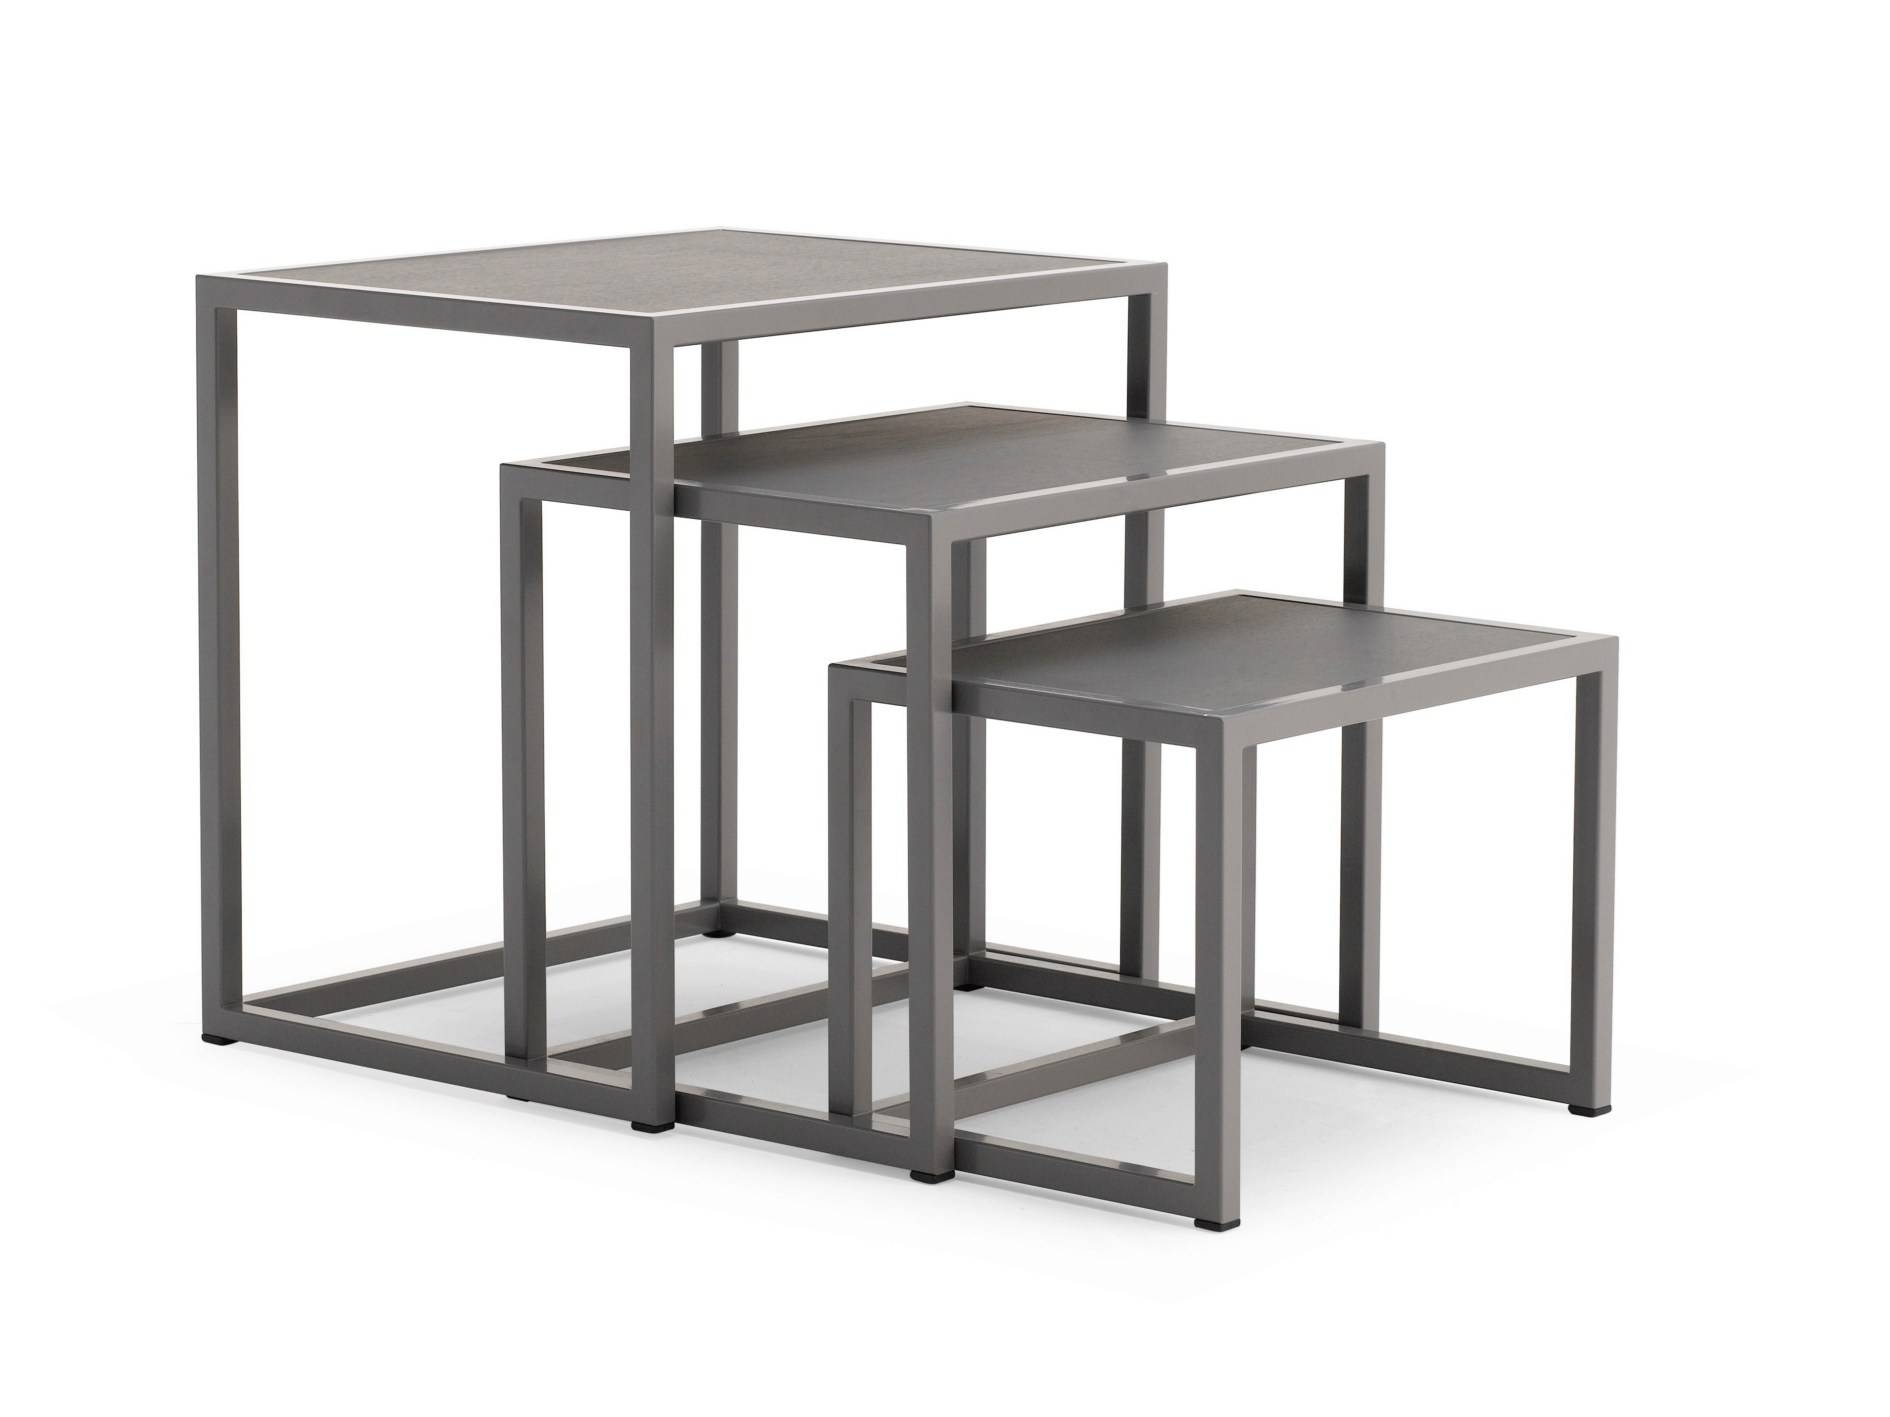 Stackable Coffee Tables | Archiproducts In Stackable Coffee Tables (View 21 of 30)